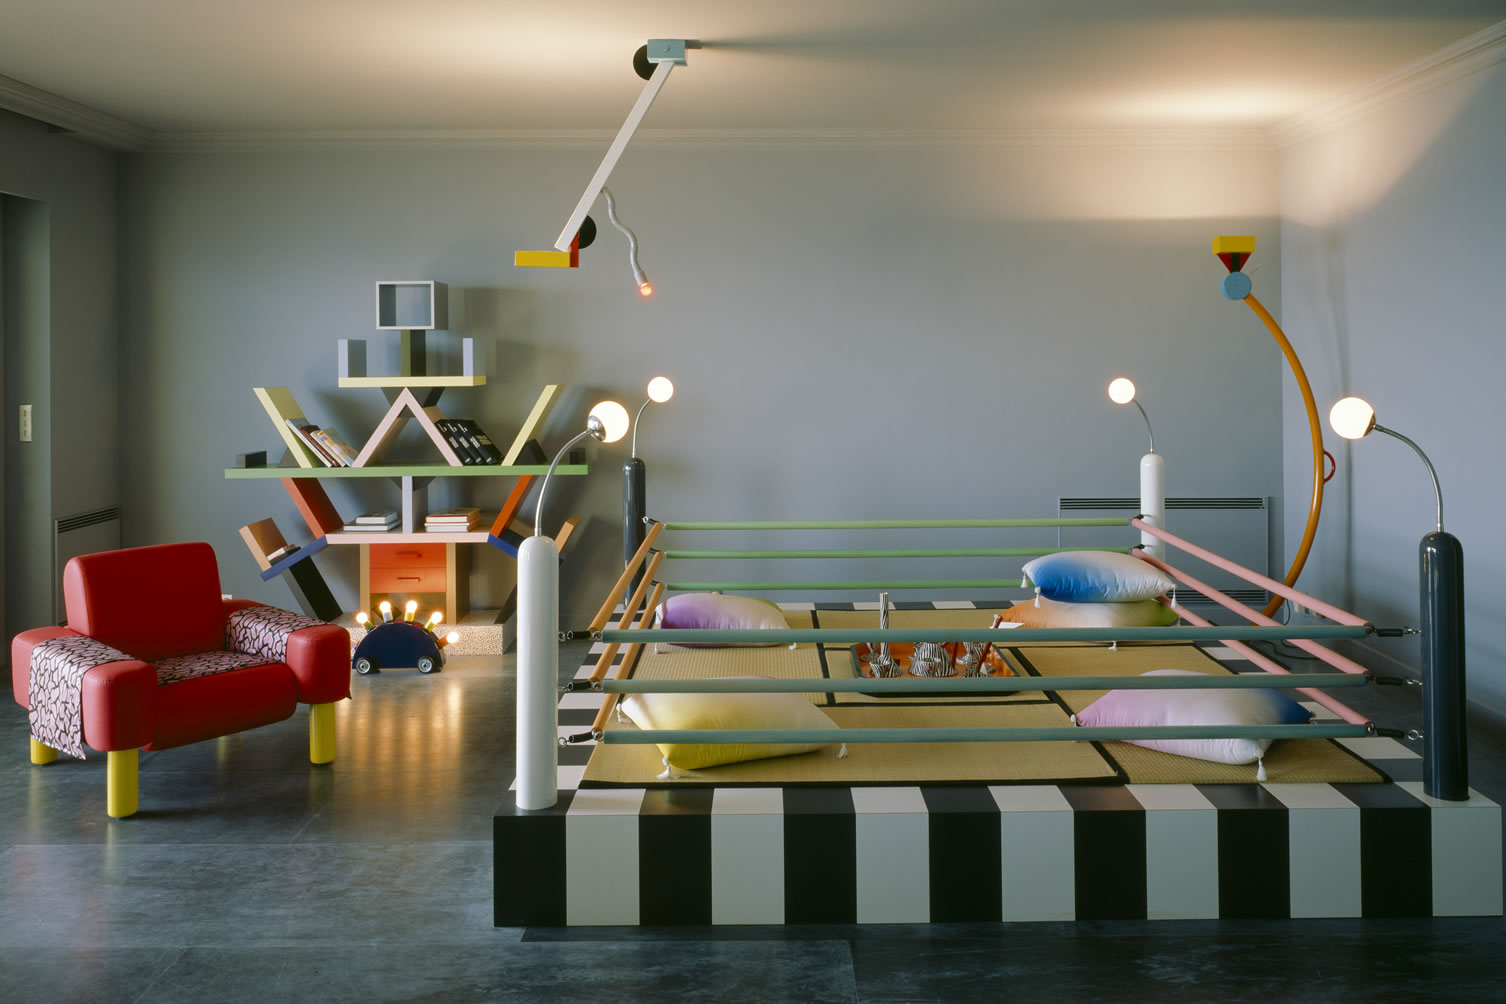 Karl lagerfeld and his memphis design apartment